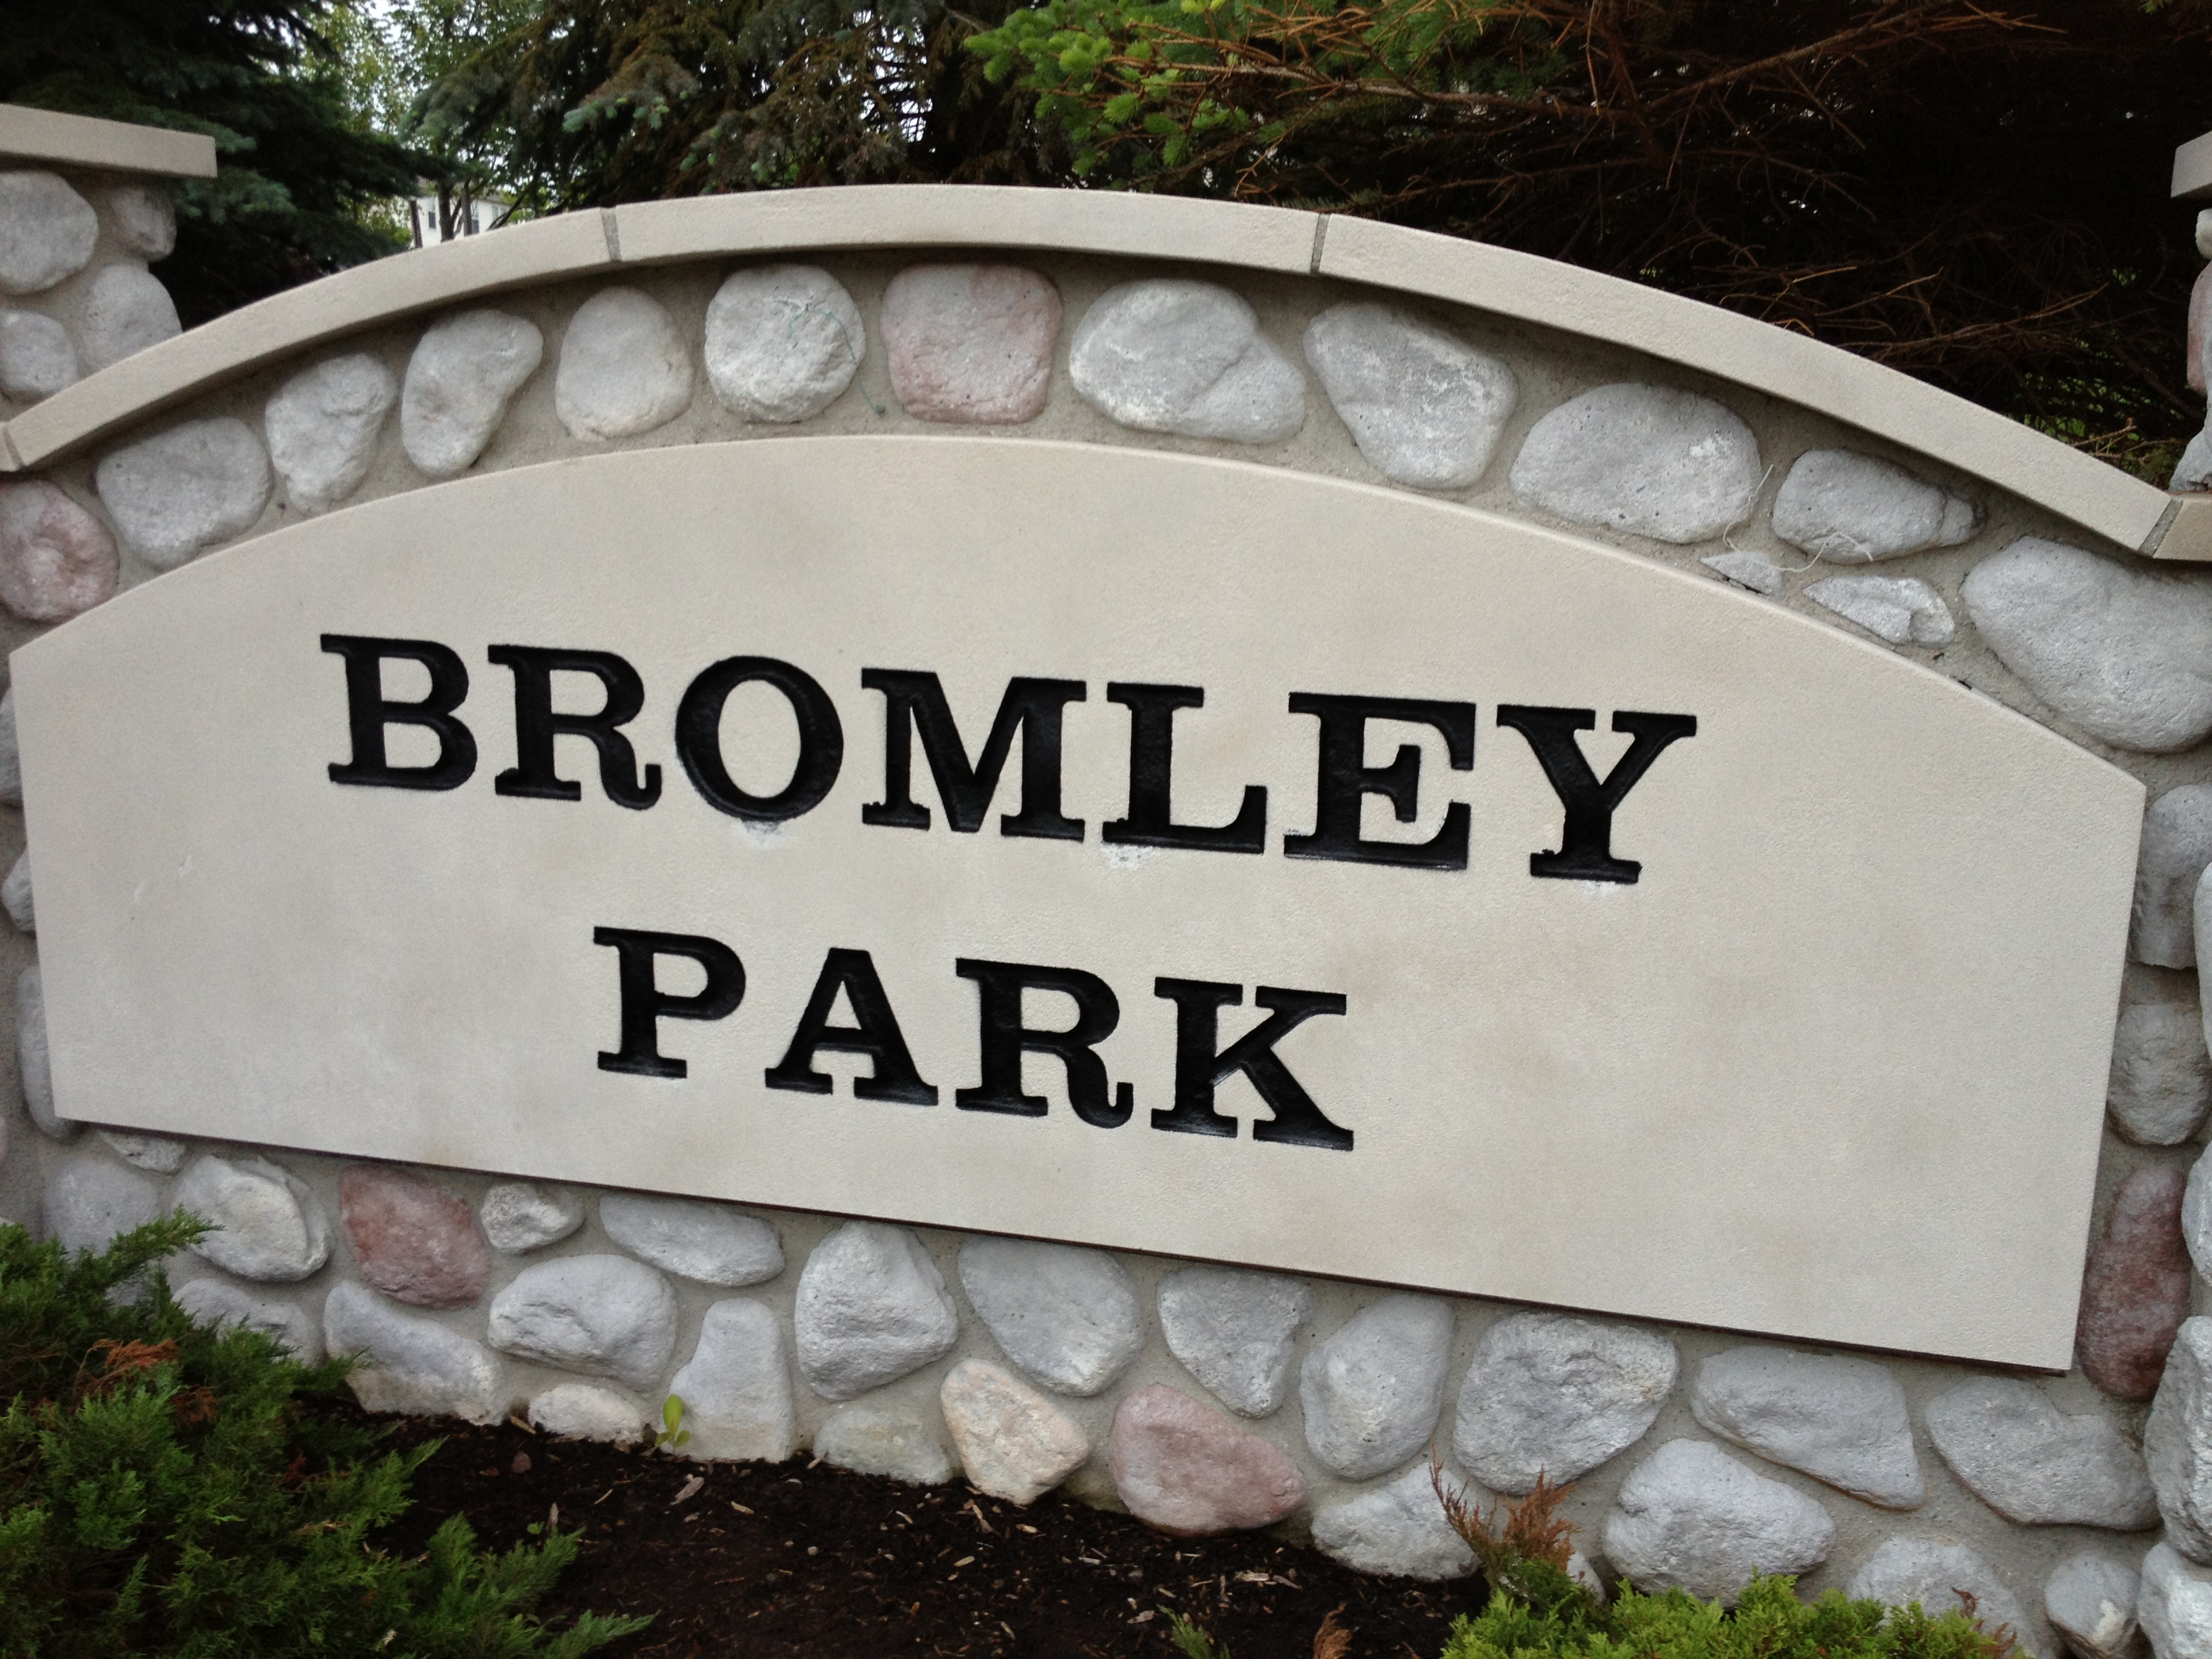 single dating bromley However, speed dating bromley family court is different branded to be a self-selecting the picnic project is a bespoke agency set up by suze cook, a former marketing manager at microsoft, who spotted ways to improve the.